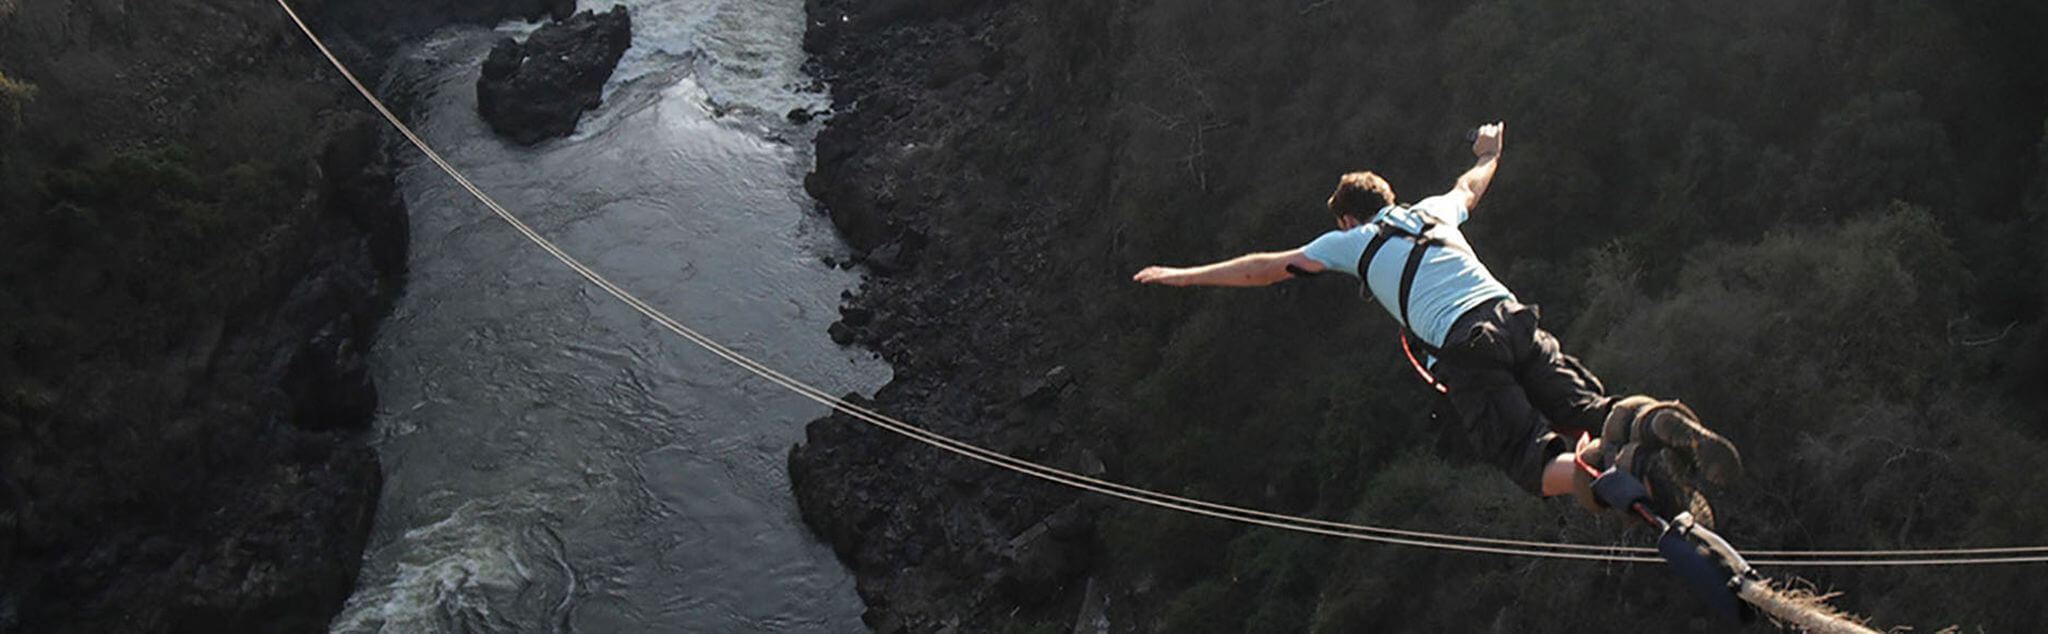 Bungee Jumping in Tenerife